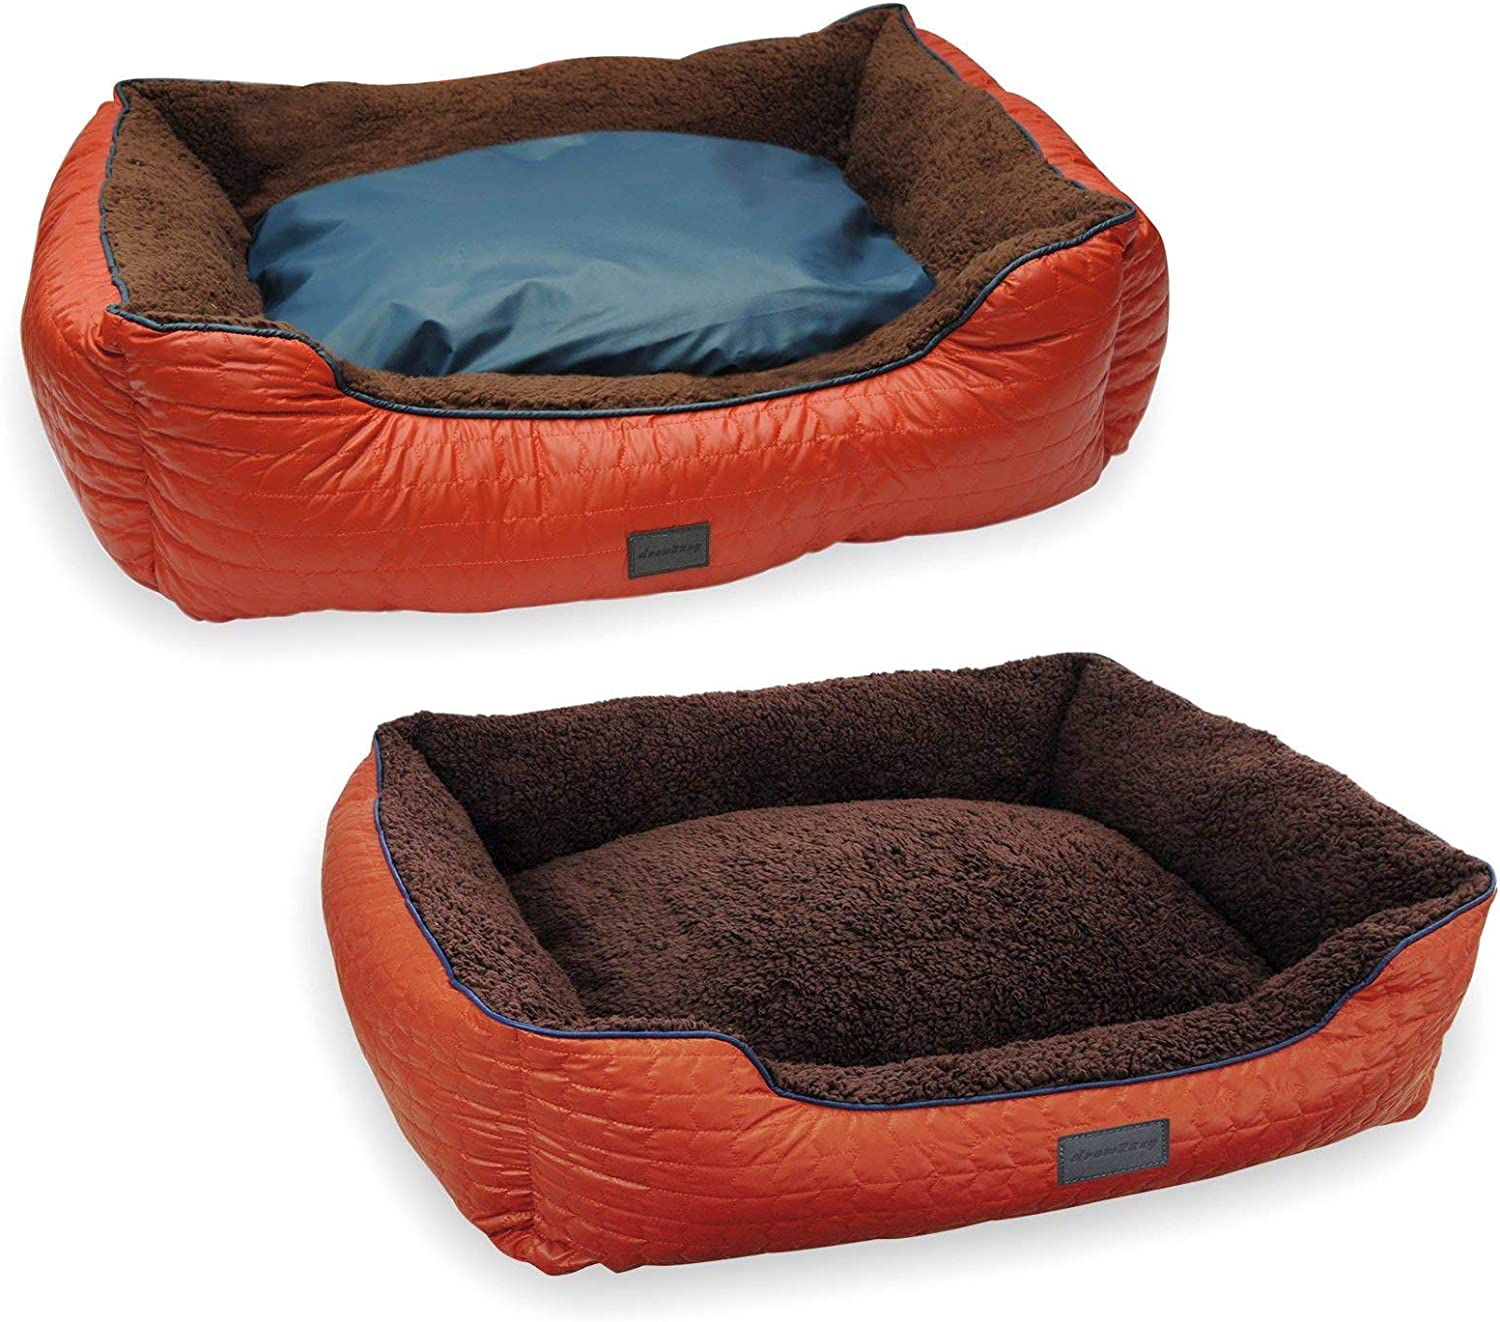 EZ Living Home Chevron Quilted Couch Bed, Medium, Tangerine